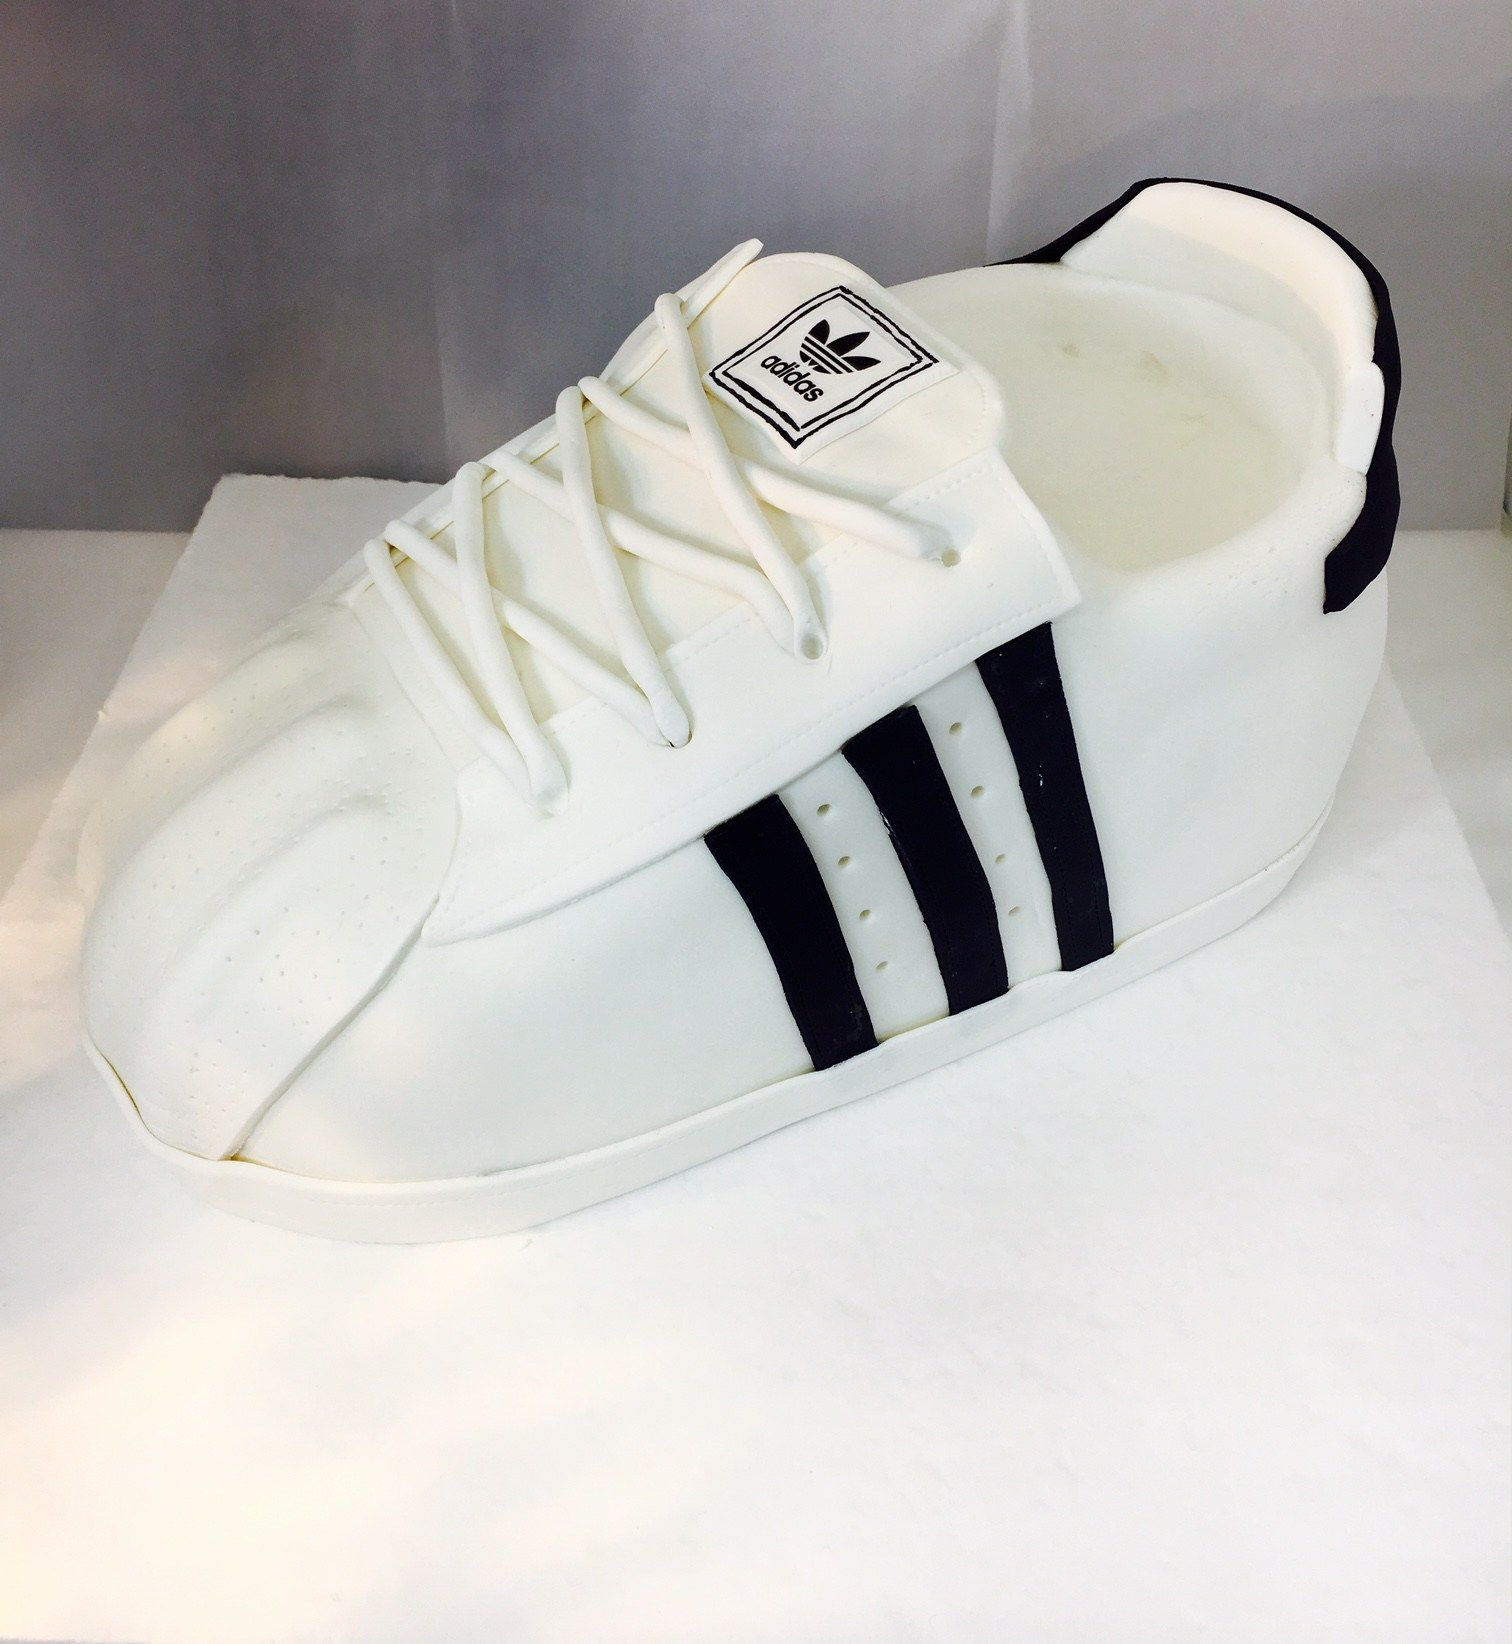 3D Adidas Tennis Shoe Cake MB-116 3D Adidas Tennis Shoe Cake MB-116 – Confection Perfection Cakes Online Ordering